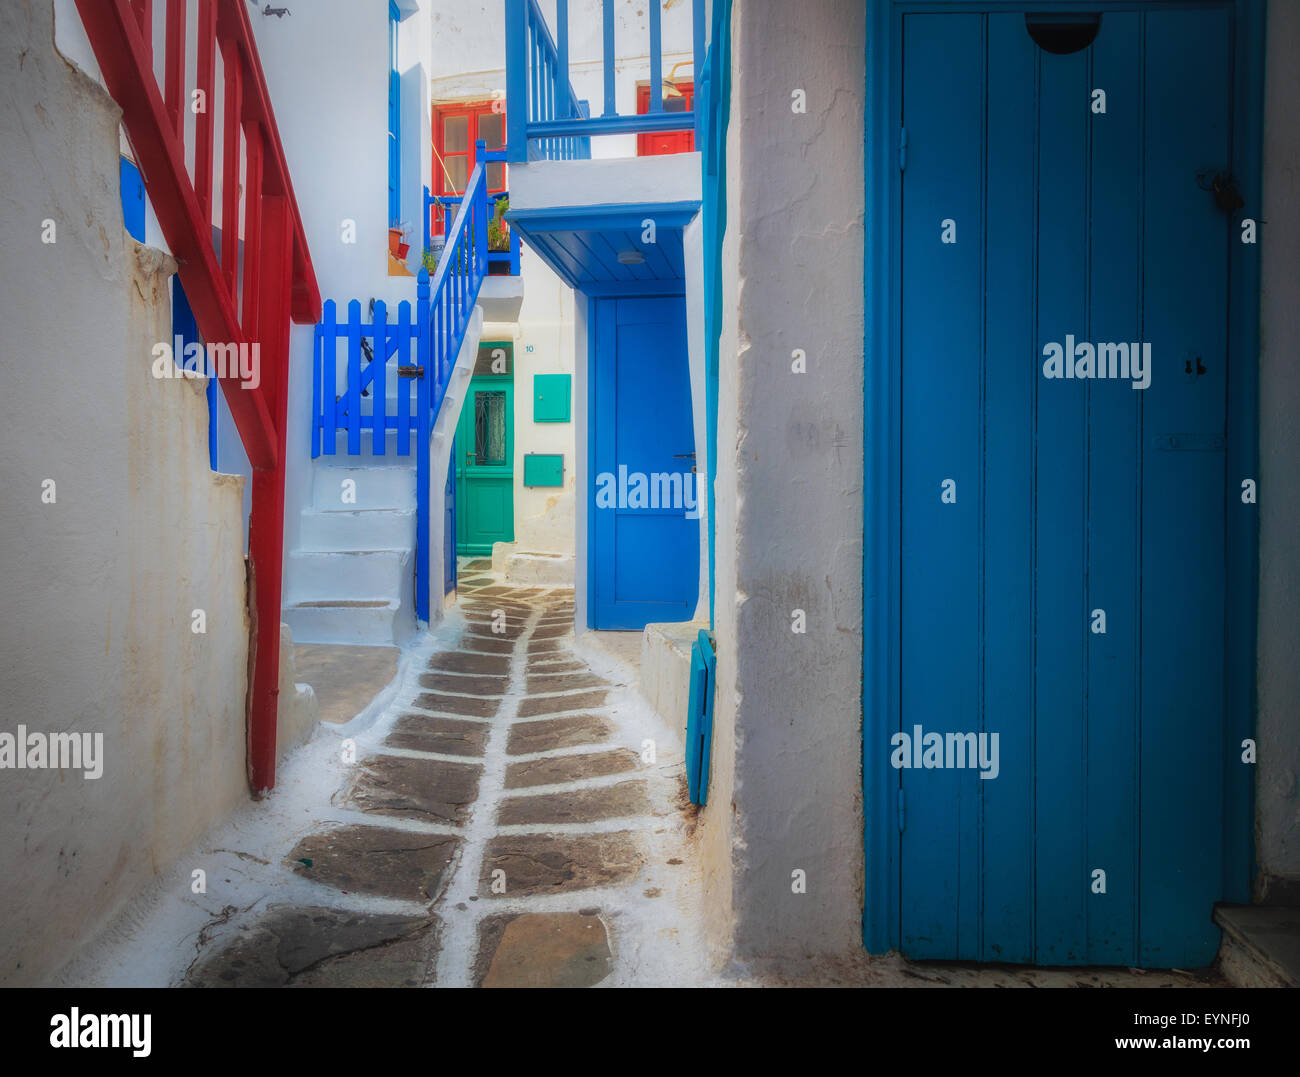 Streets in Mykonos town on the Greek island of Mykonos. - Stock Image